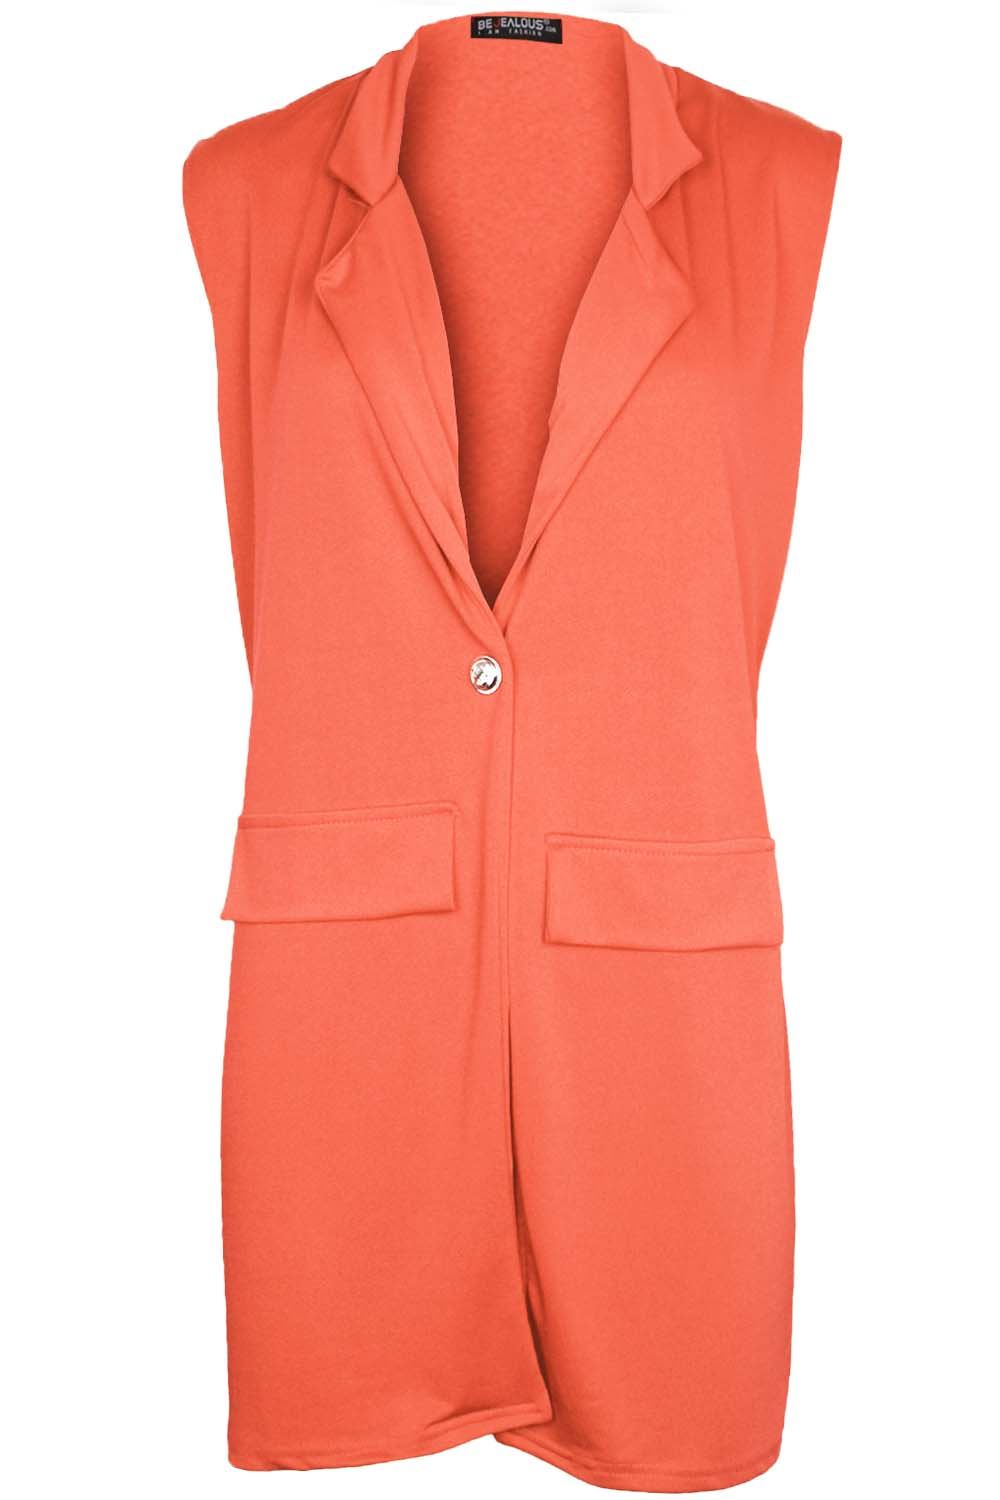 Women-Ladies-Sleeveless-Long-Duster-Coat-Collar-Waistcoat-Smart-Blazer-Plus-Size thumbnail 20